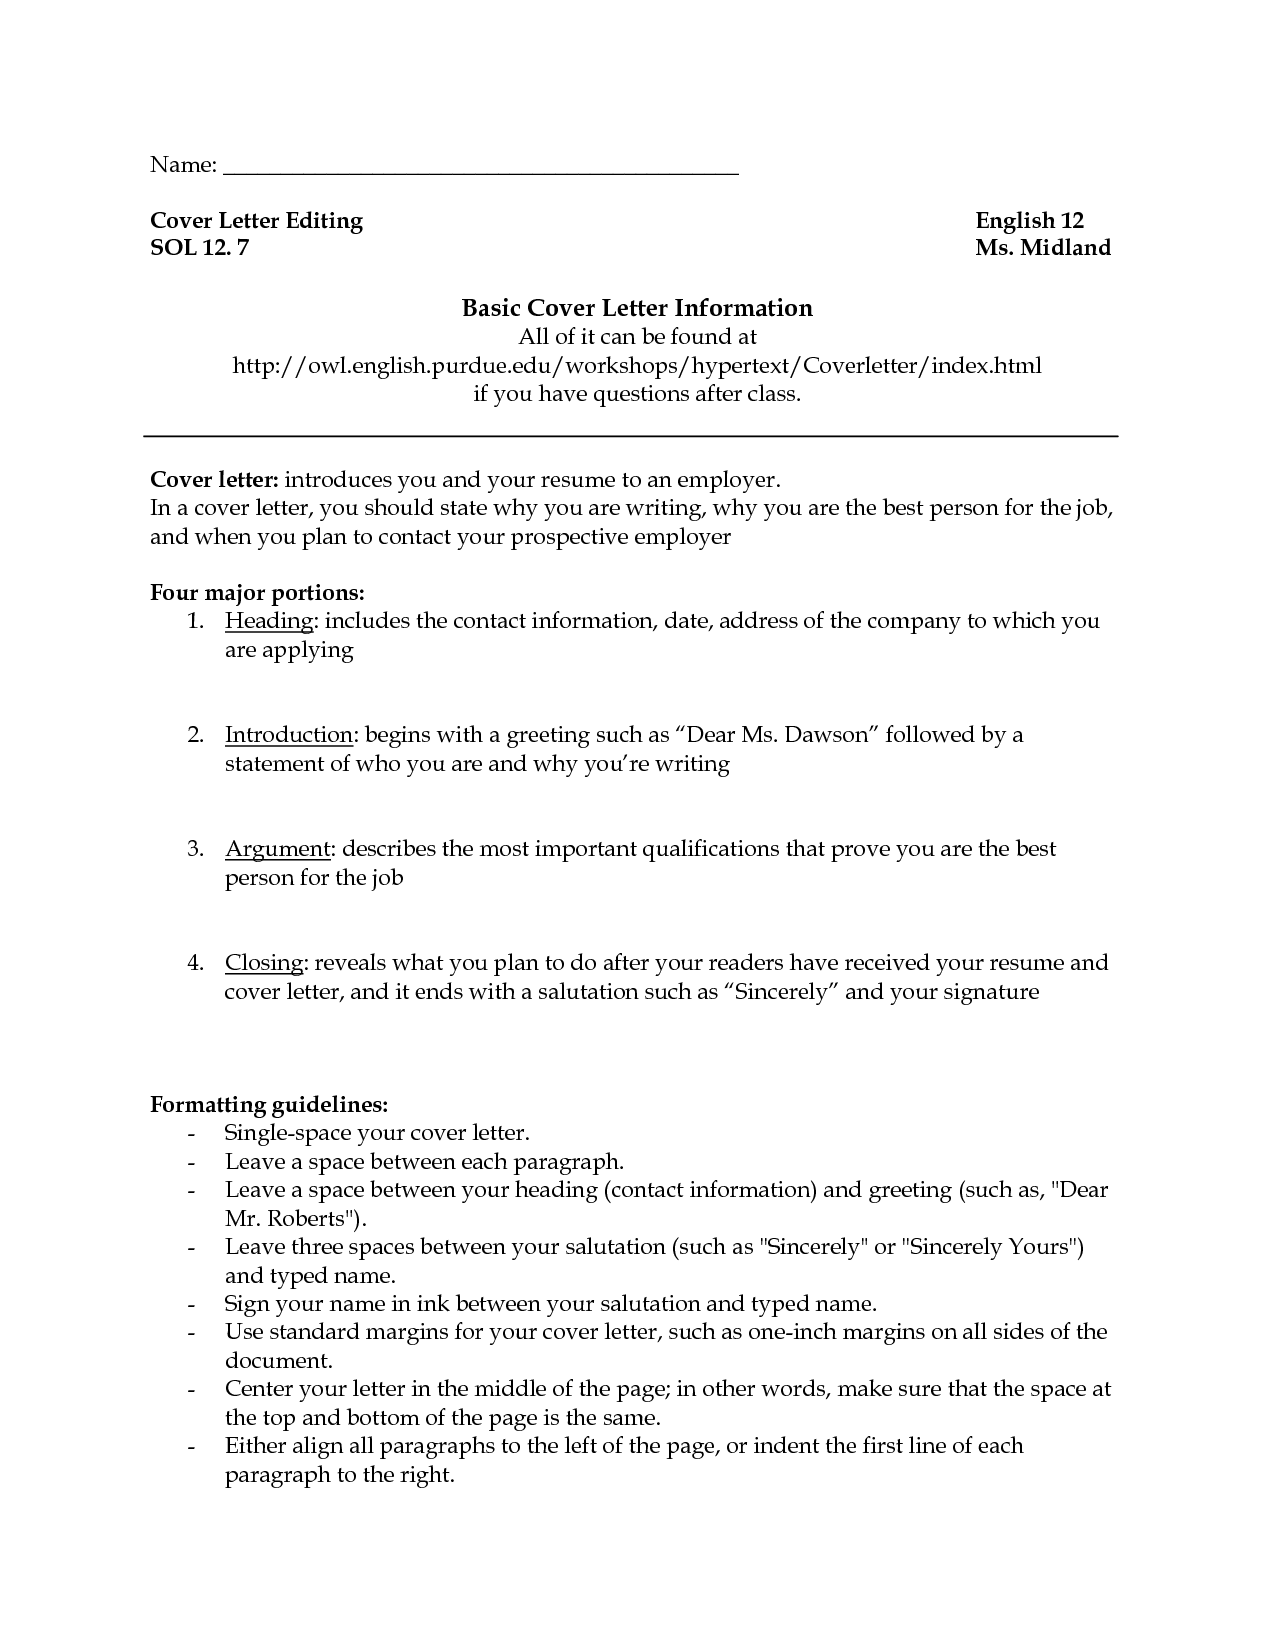 cover letter salutation name addressing unknown person apptiled com unique app finder engine latest reviews market - Resume Cover Letter Greeting